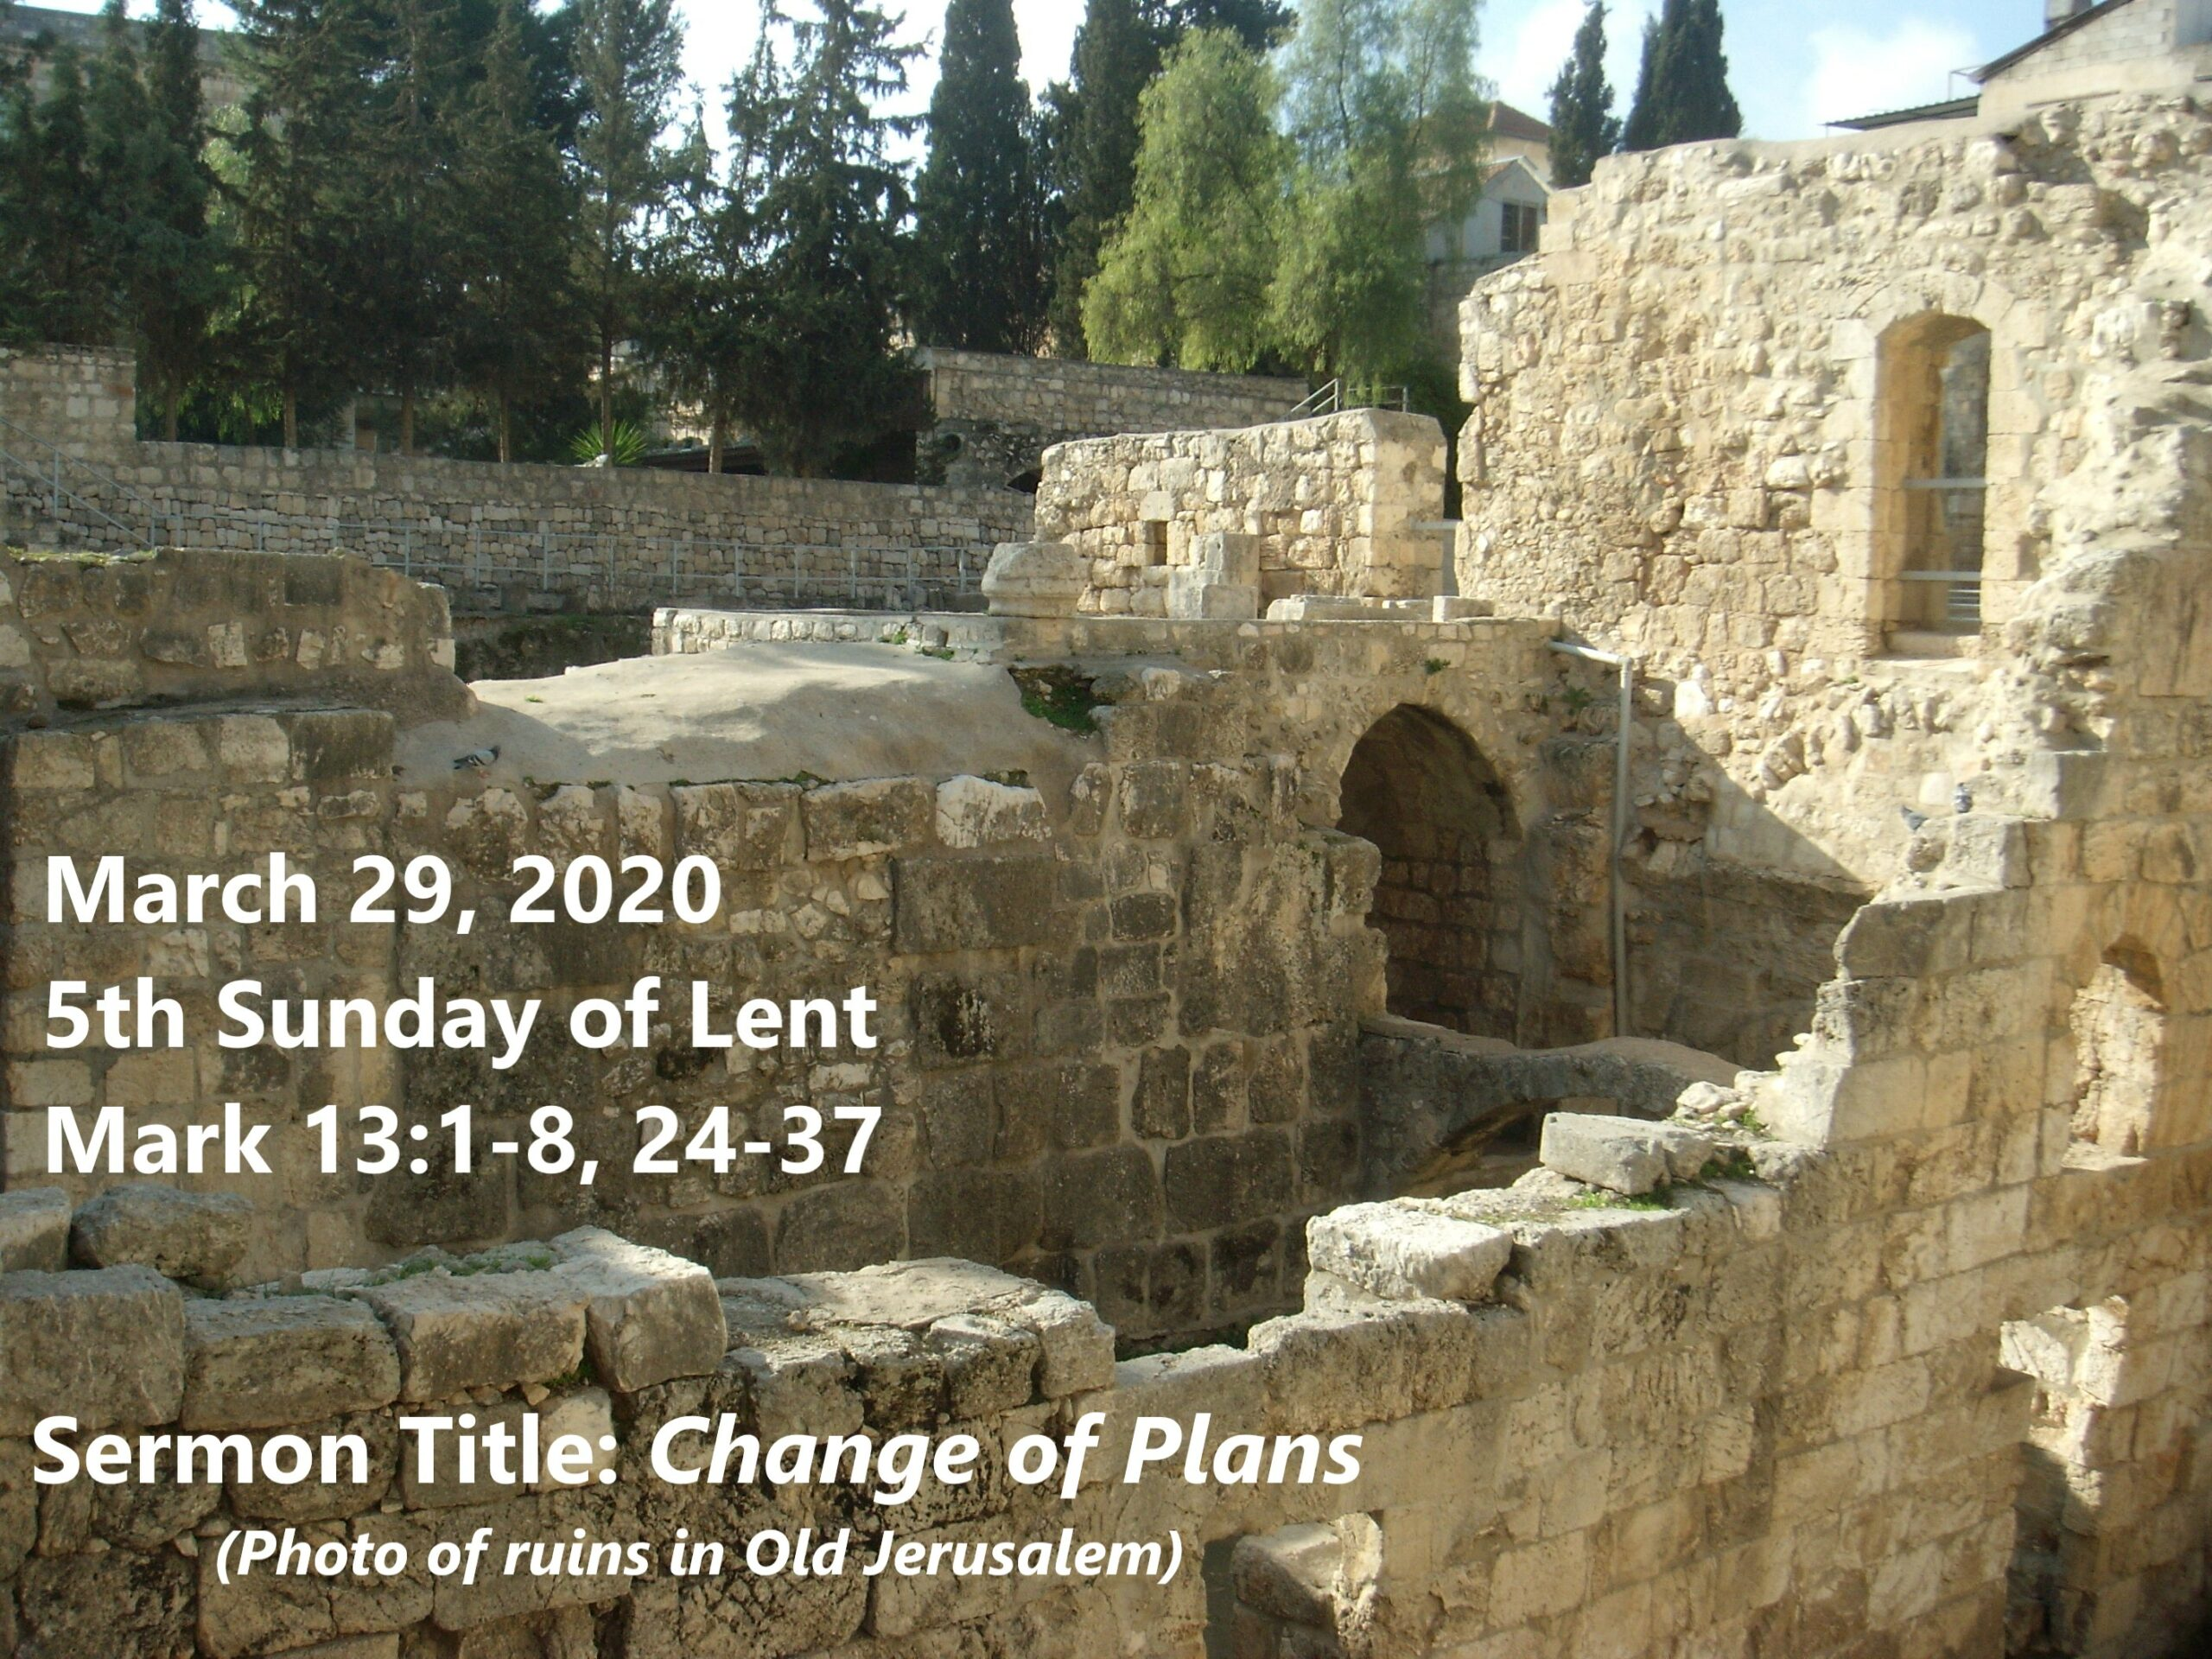 photo of ruins in Jerusalem, with sermon title, Change of Plans, and text, Mark 13:1-8, 24-37 for March 29